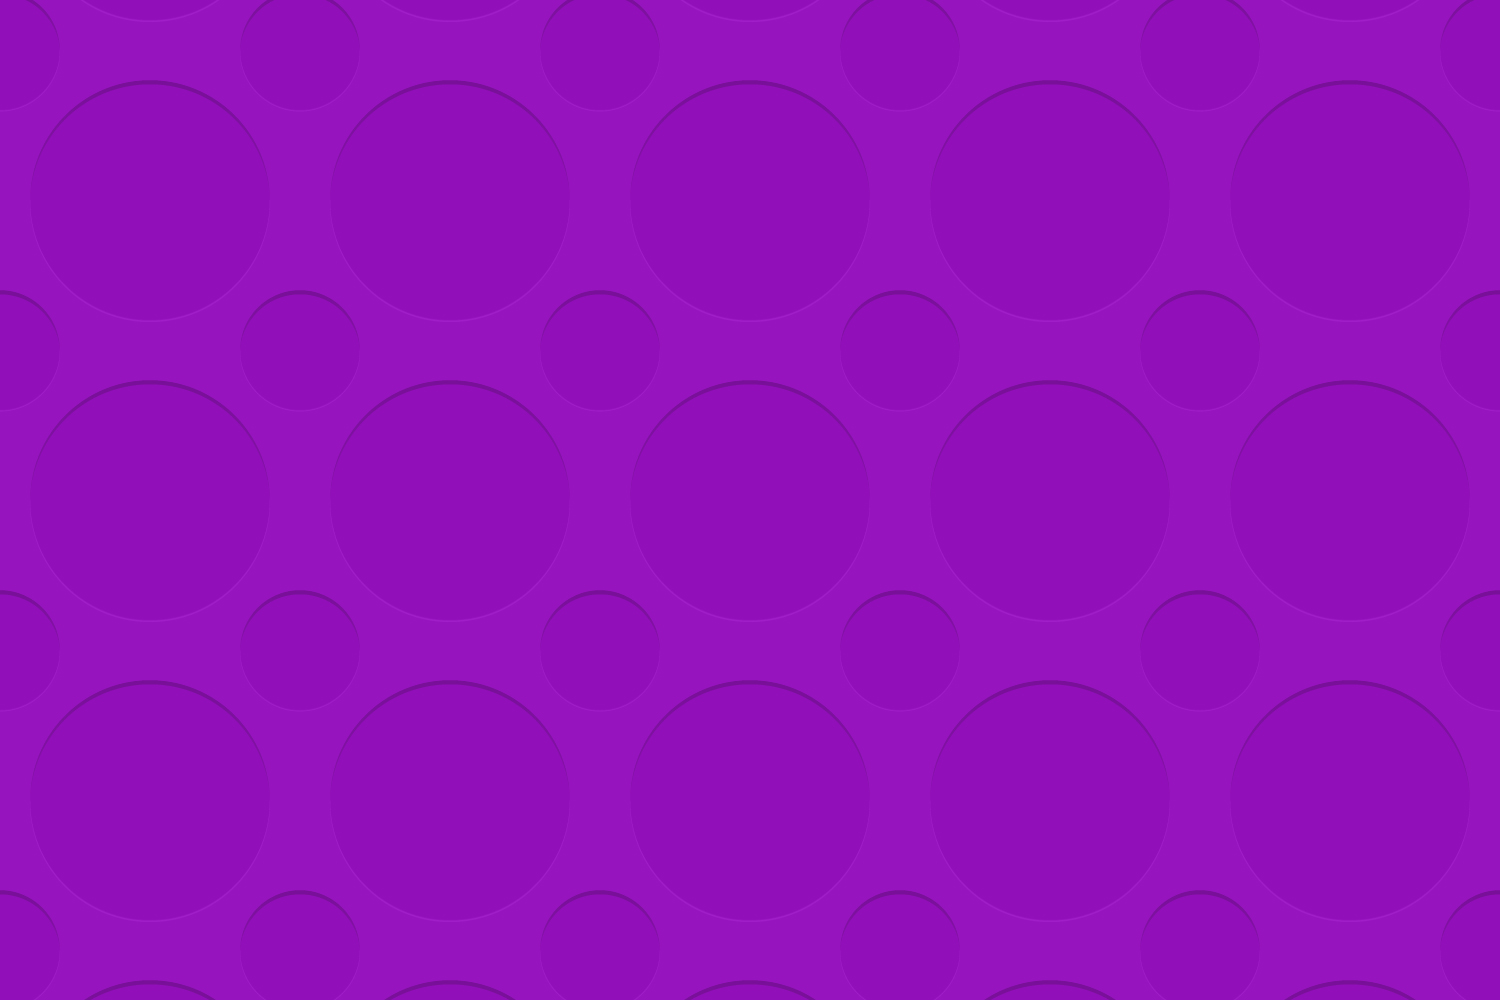 16 Seamless Circle Patterns (AI, EPS, JPG 5000x5000) example image 10